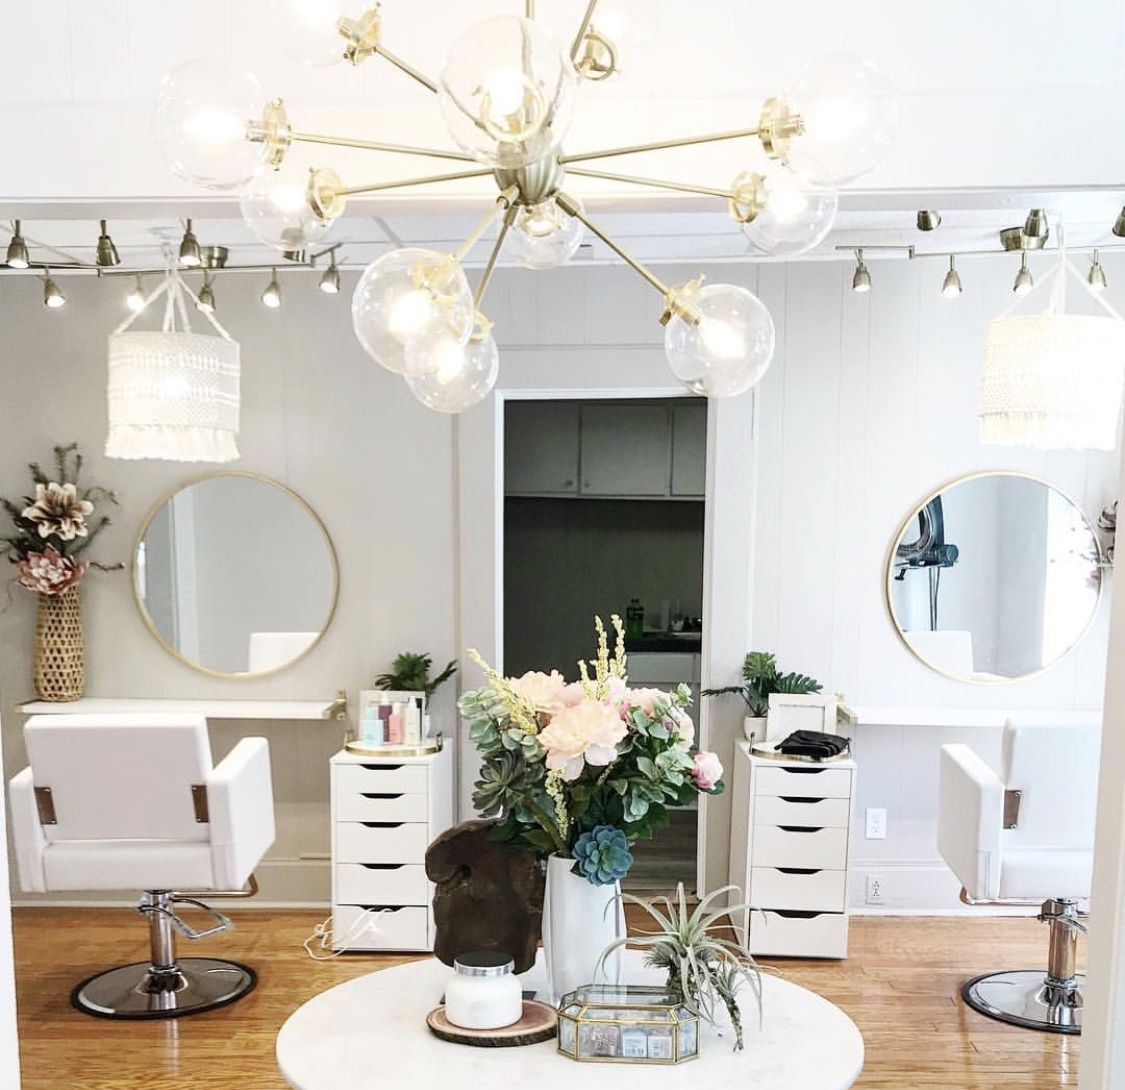 The Avant Styling Chair at Southern Roots Salon & Co. in